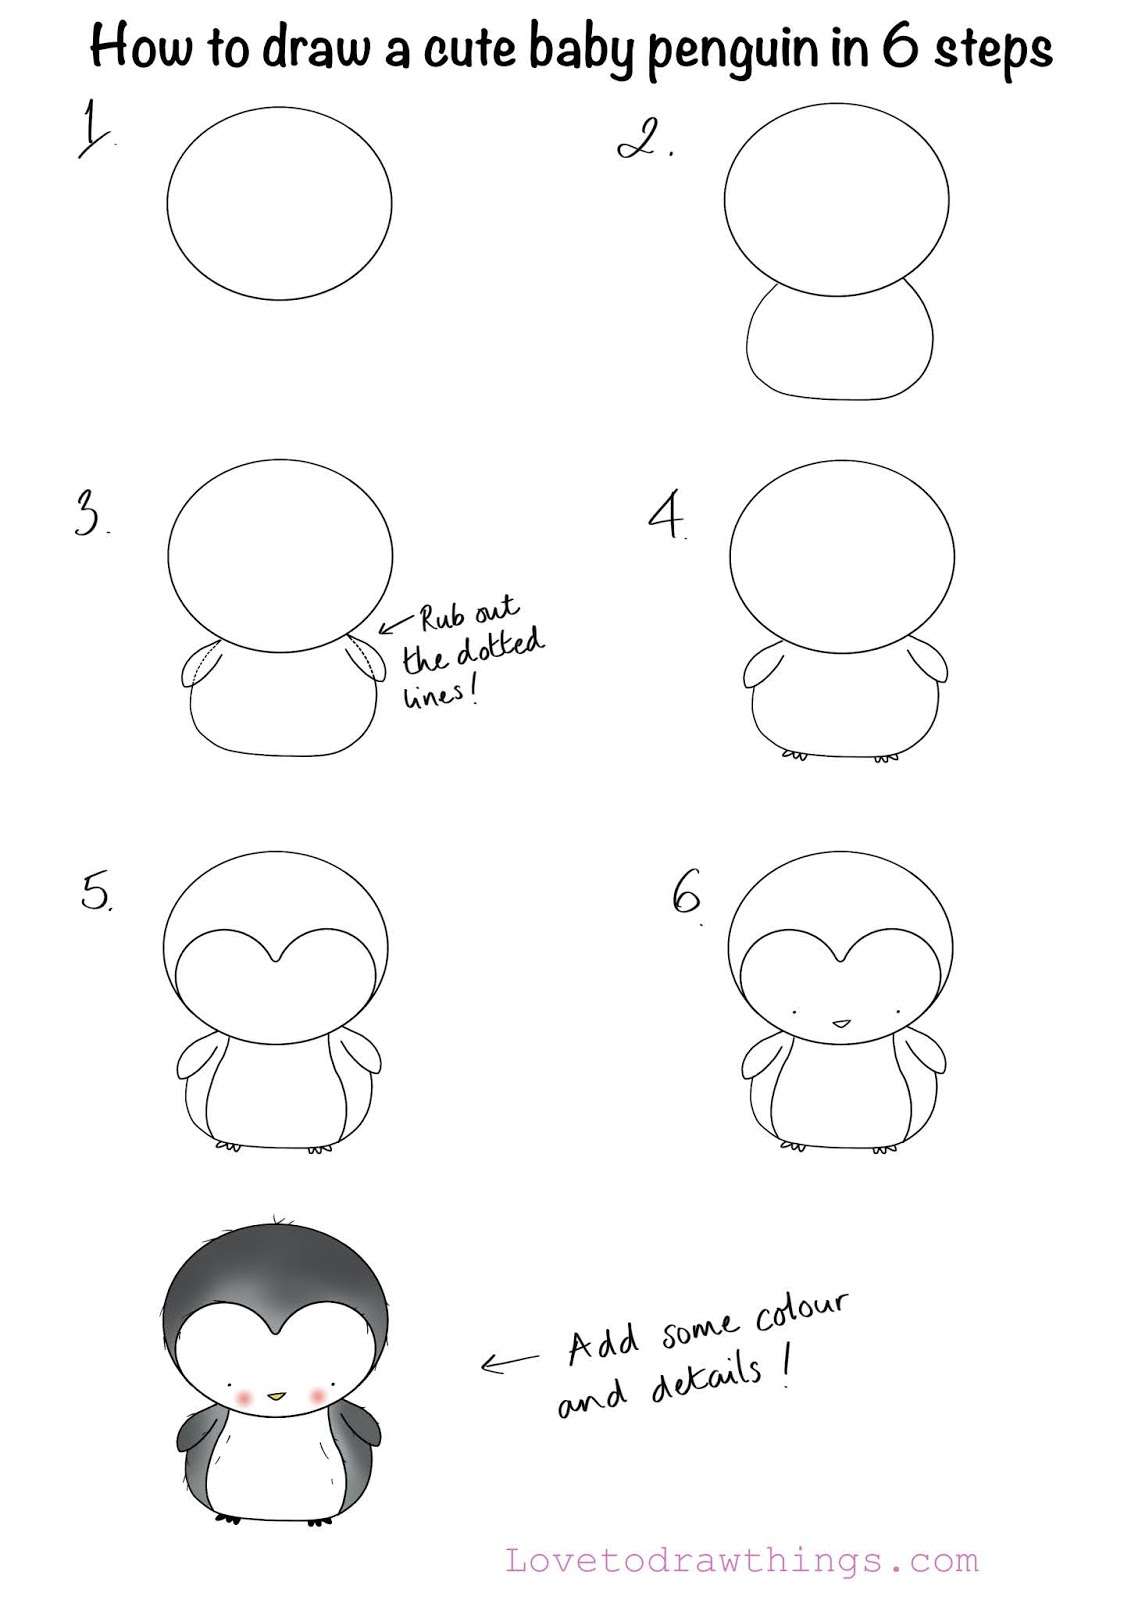 penguin steps how to draw a cute baby penguin in 6 steps steps penguin